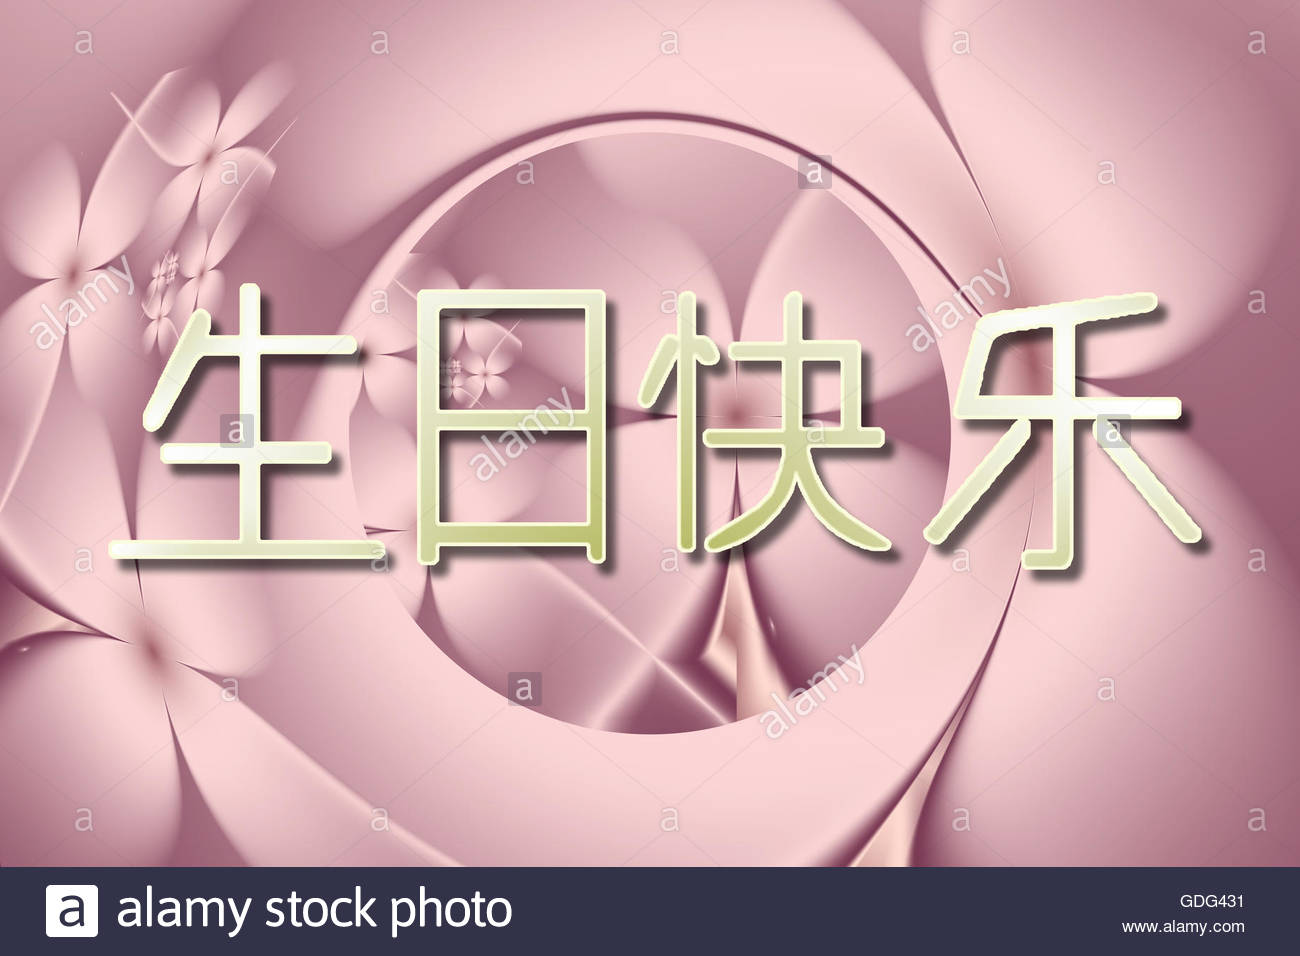 happy birthday in chinese image ; happy-birthday-wishes-written-in-chinese-characters-on-beautiful-floral-GDG431